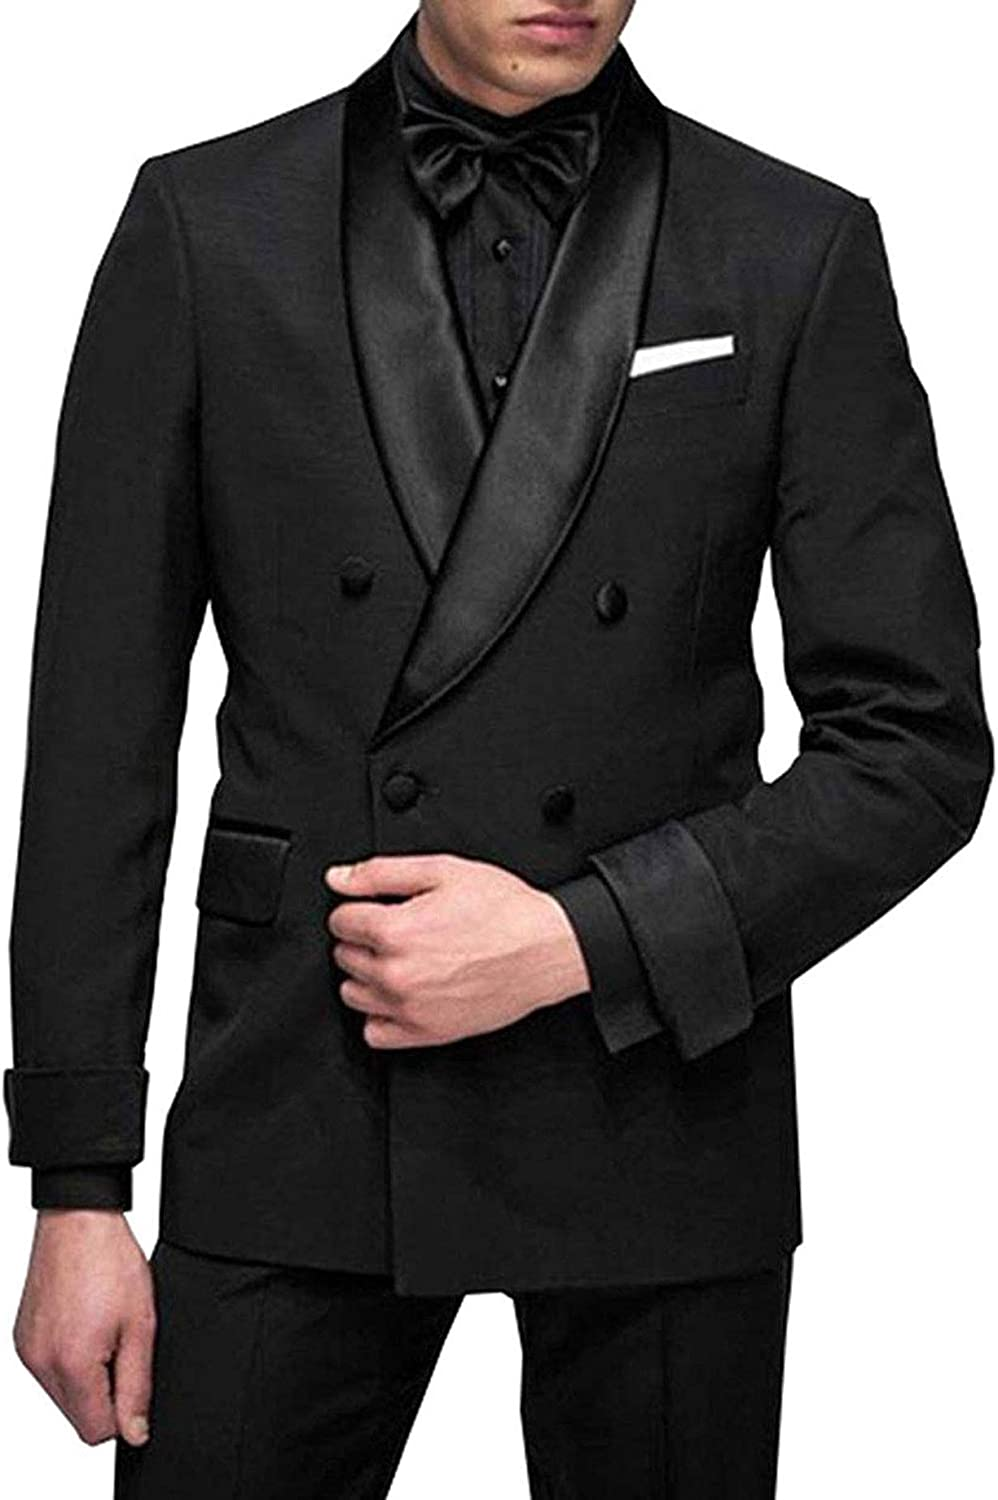 RONGKIM Men's Fashion 2 Pieces Suit Double Breasted Slim Fit Tuxedos Blazer Waistcoat